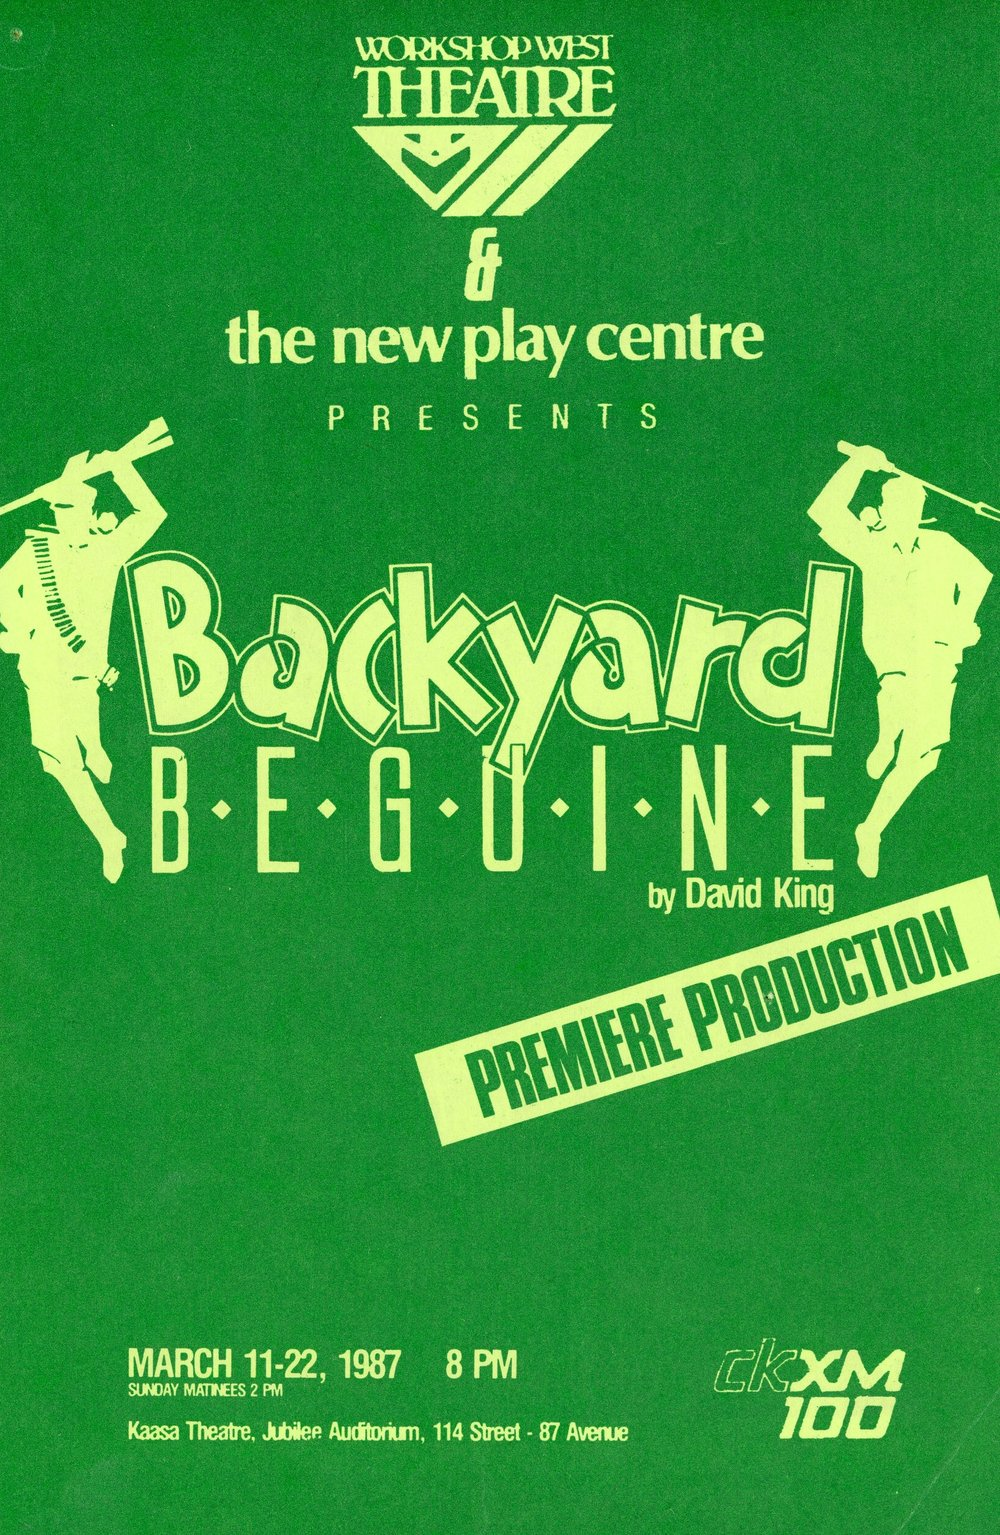 Backyard Beguine (March, 1987) - Program Cover.jpg